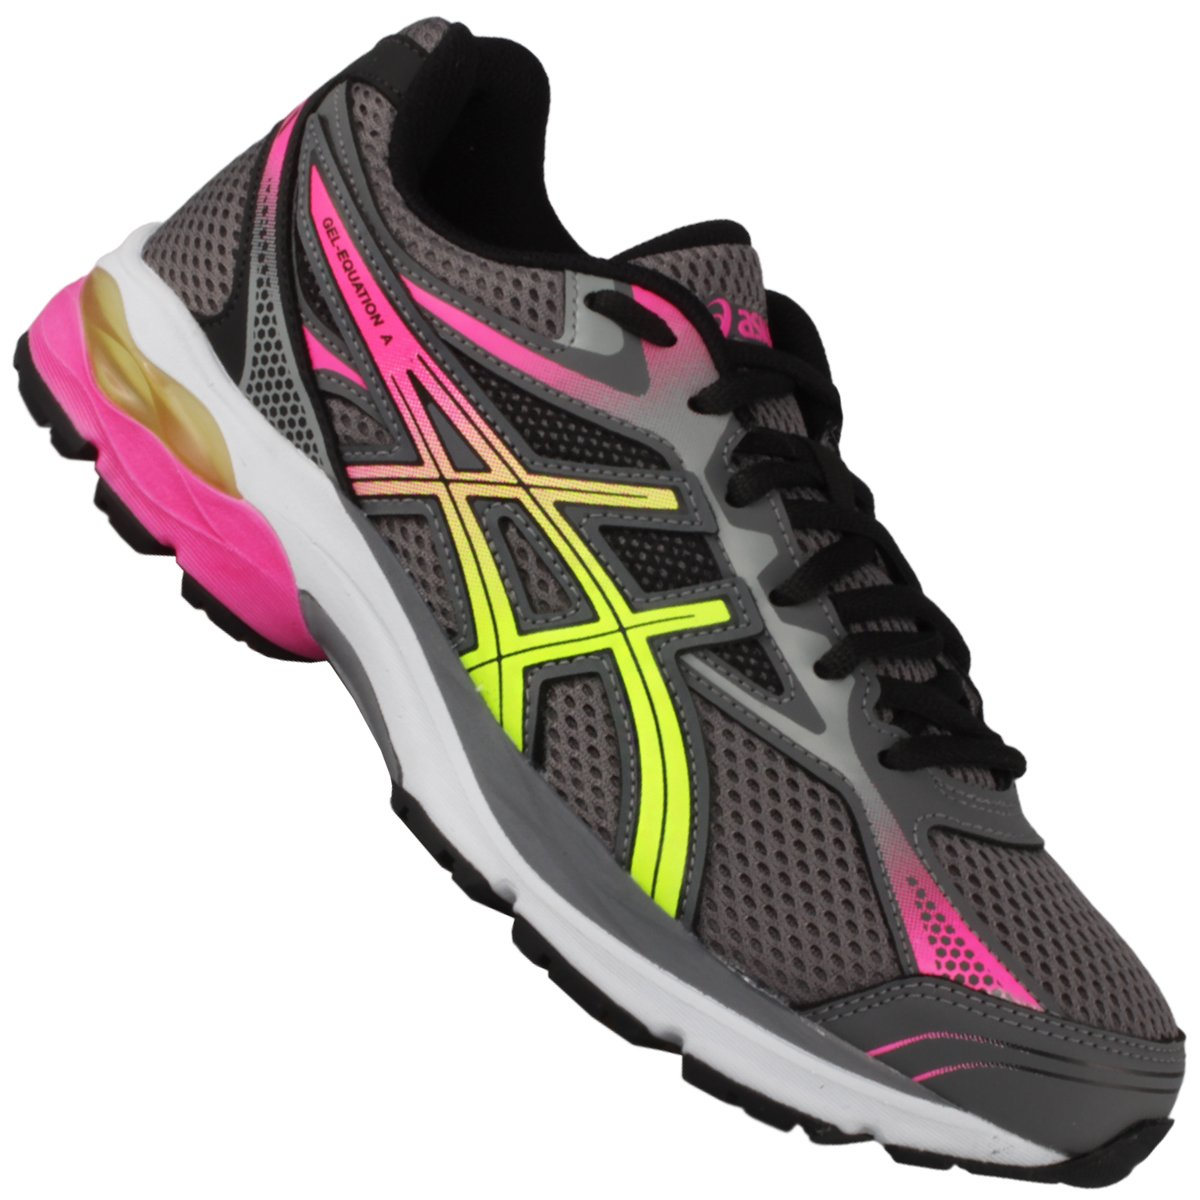 c546fab3638 Tênis Asics Gel-Equation 9 A Feminino